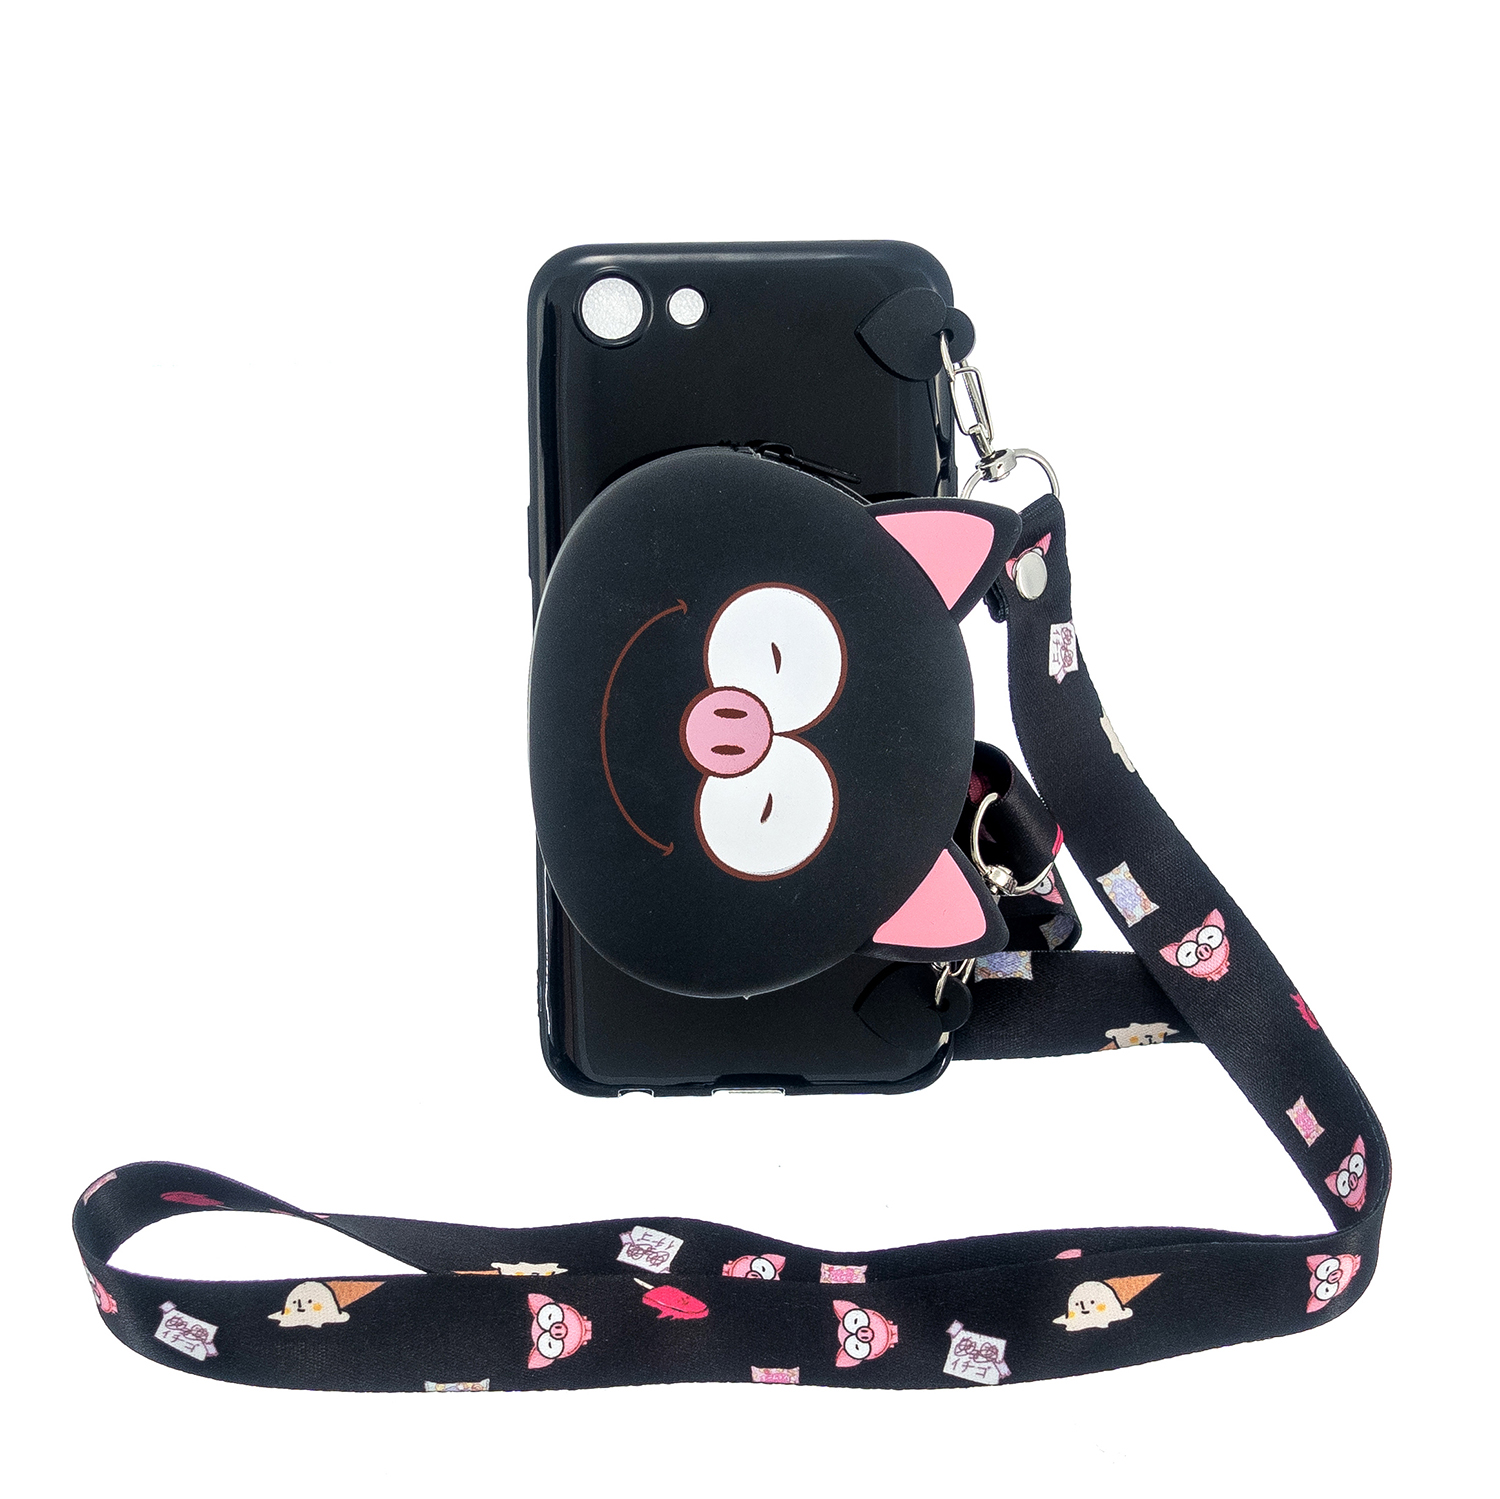 For OPPO A83/A9 2020 Cellphone Case Mobile Phone TPU Shell Shockproof Cover with Cartoon Cat Pig Panda Coin Purse Lovely Shoulder Starp  Black